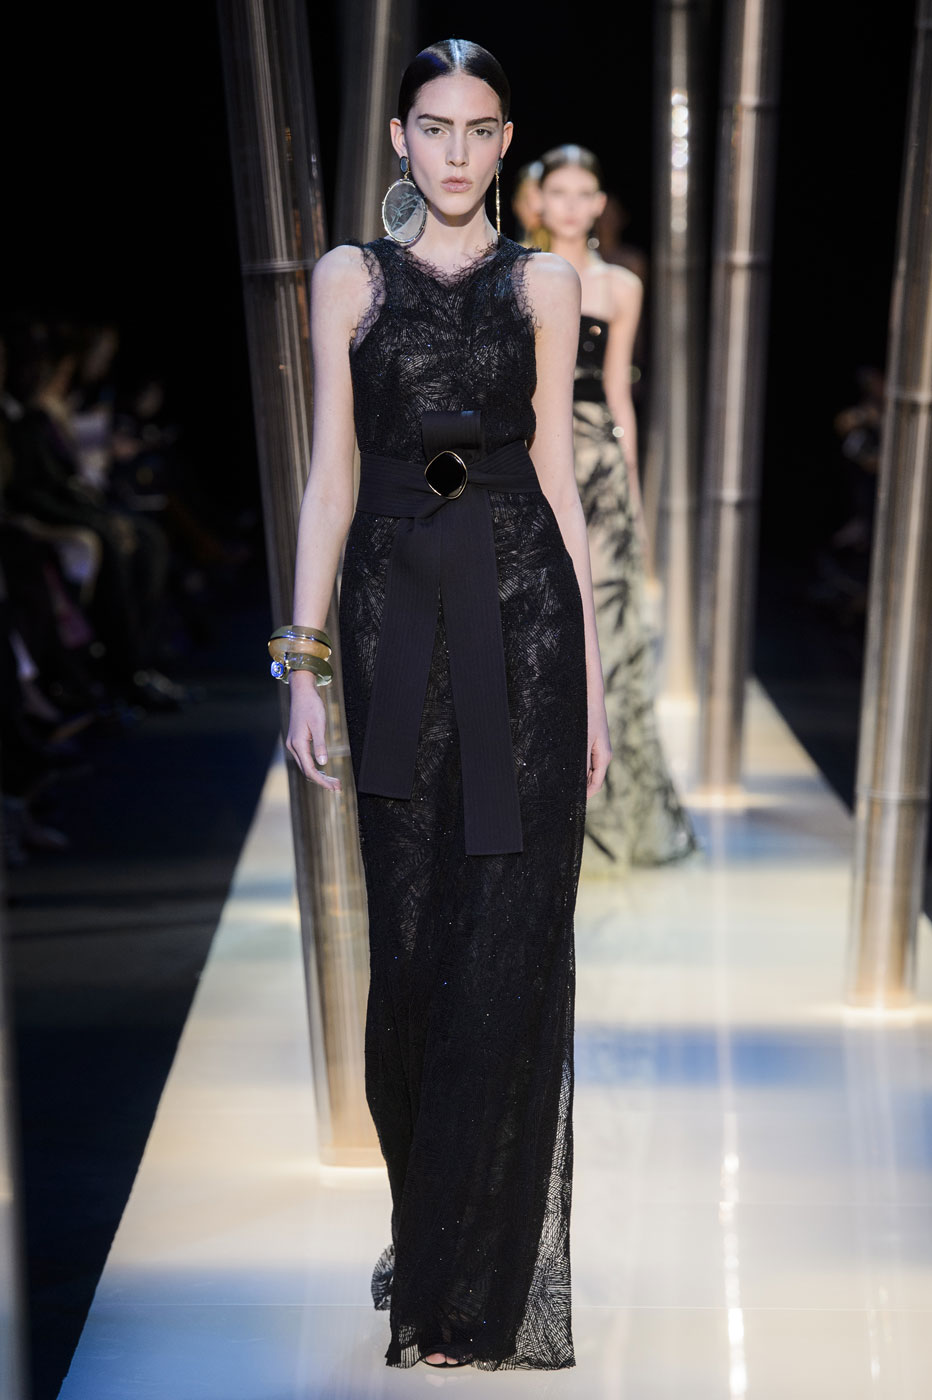 Giorgio-armani-Prive-fashion-runway-show-haute-couture-paris-spring-2015-the-impression-101